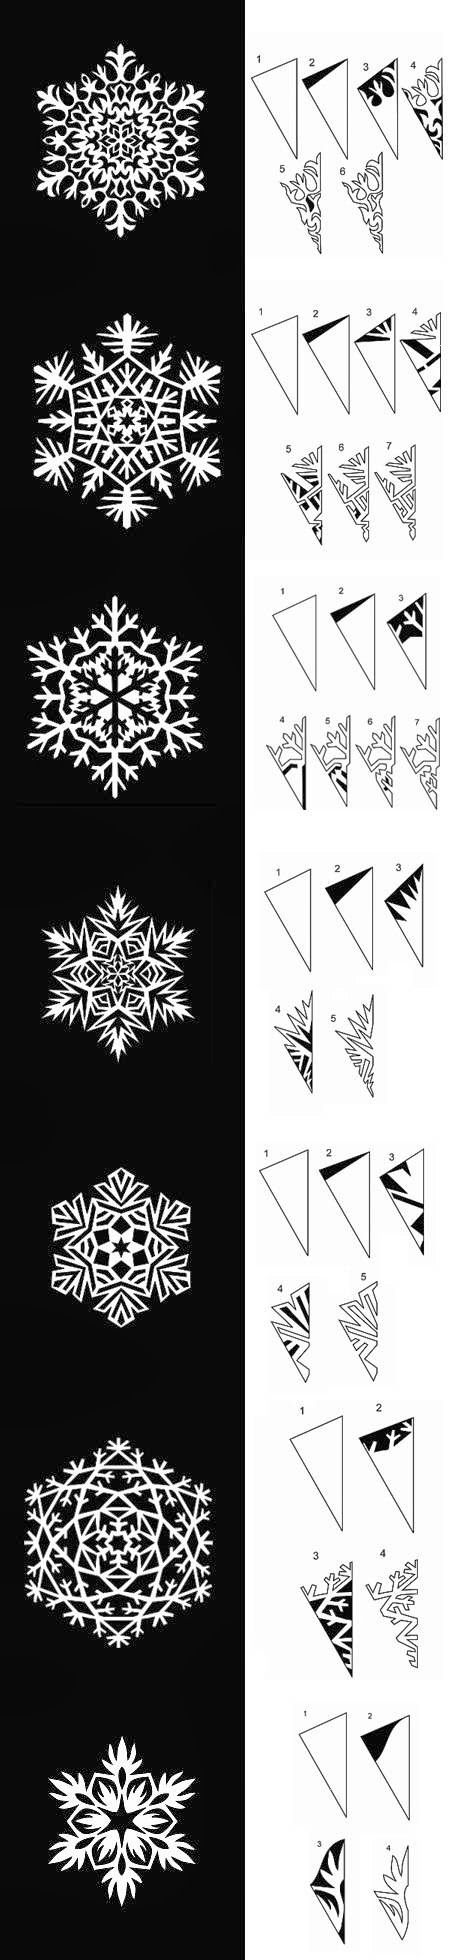 Diy Paper Snowflakes Templates The Most Wonderful Time Of The